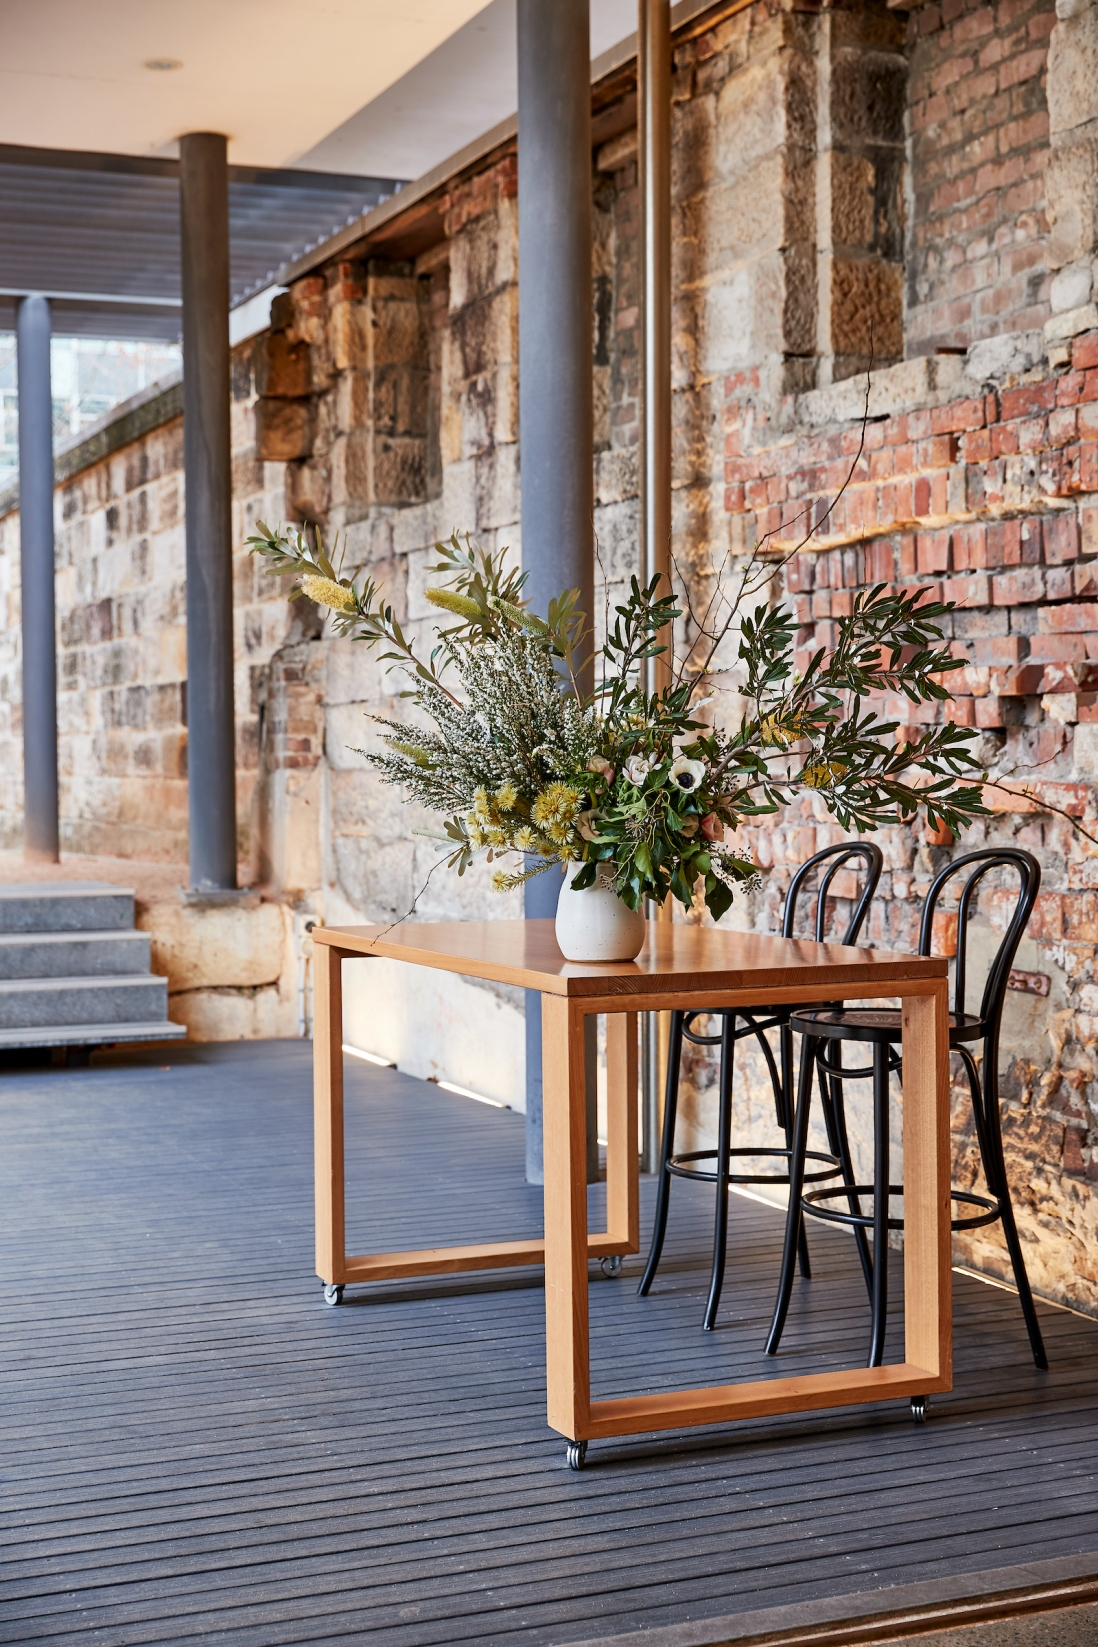 Outdoor space with cover, with floral arrangements set up on wooden table.